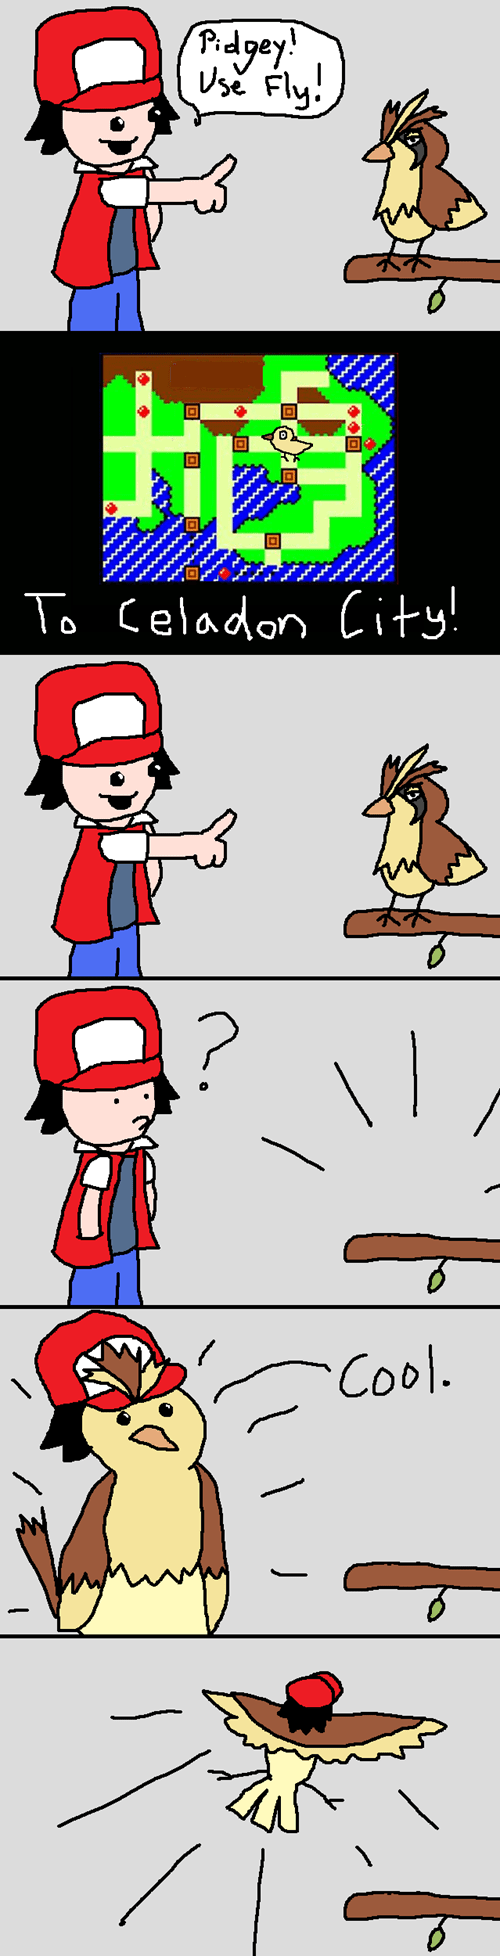 fly,pidgey,wtf,web comics